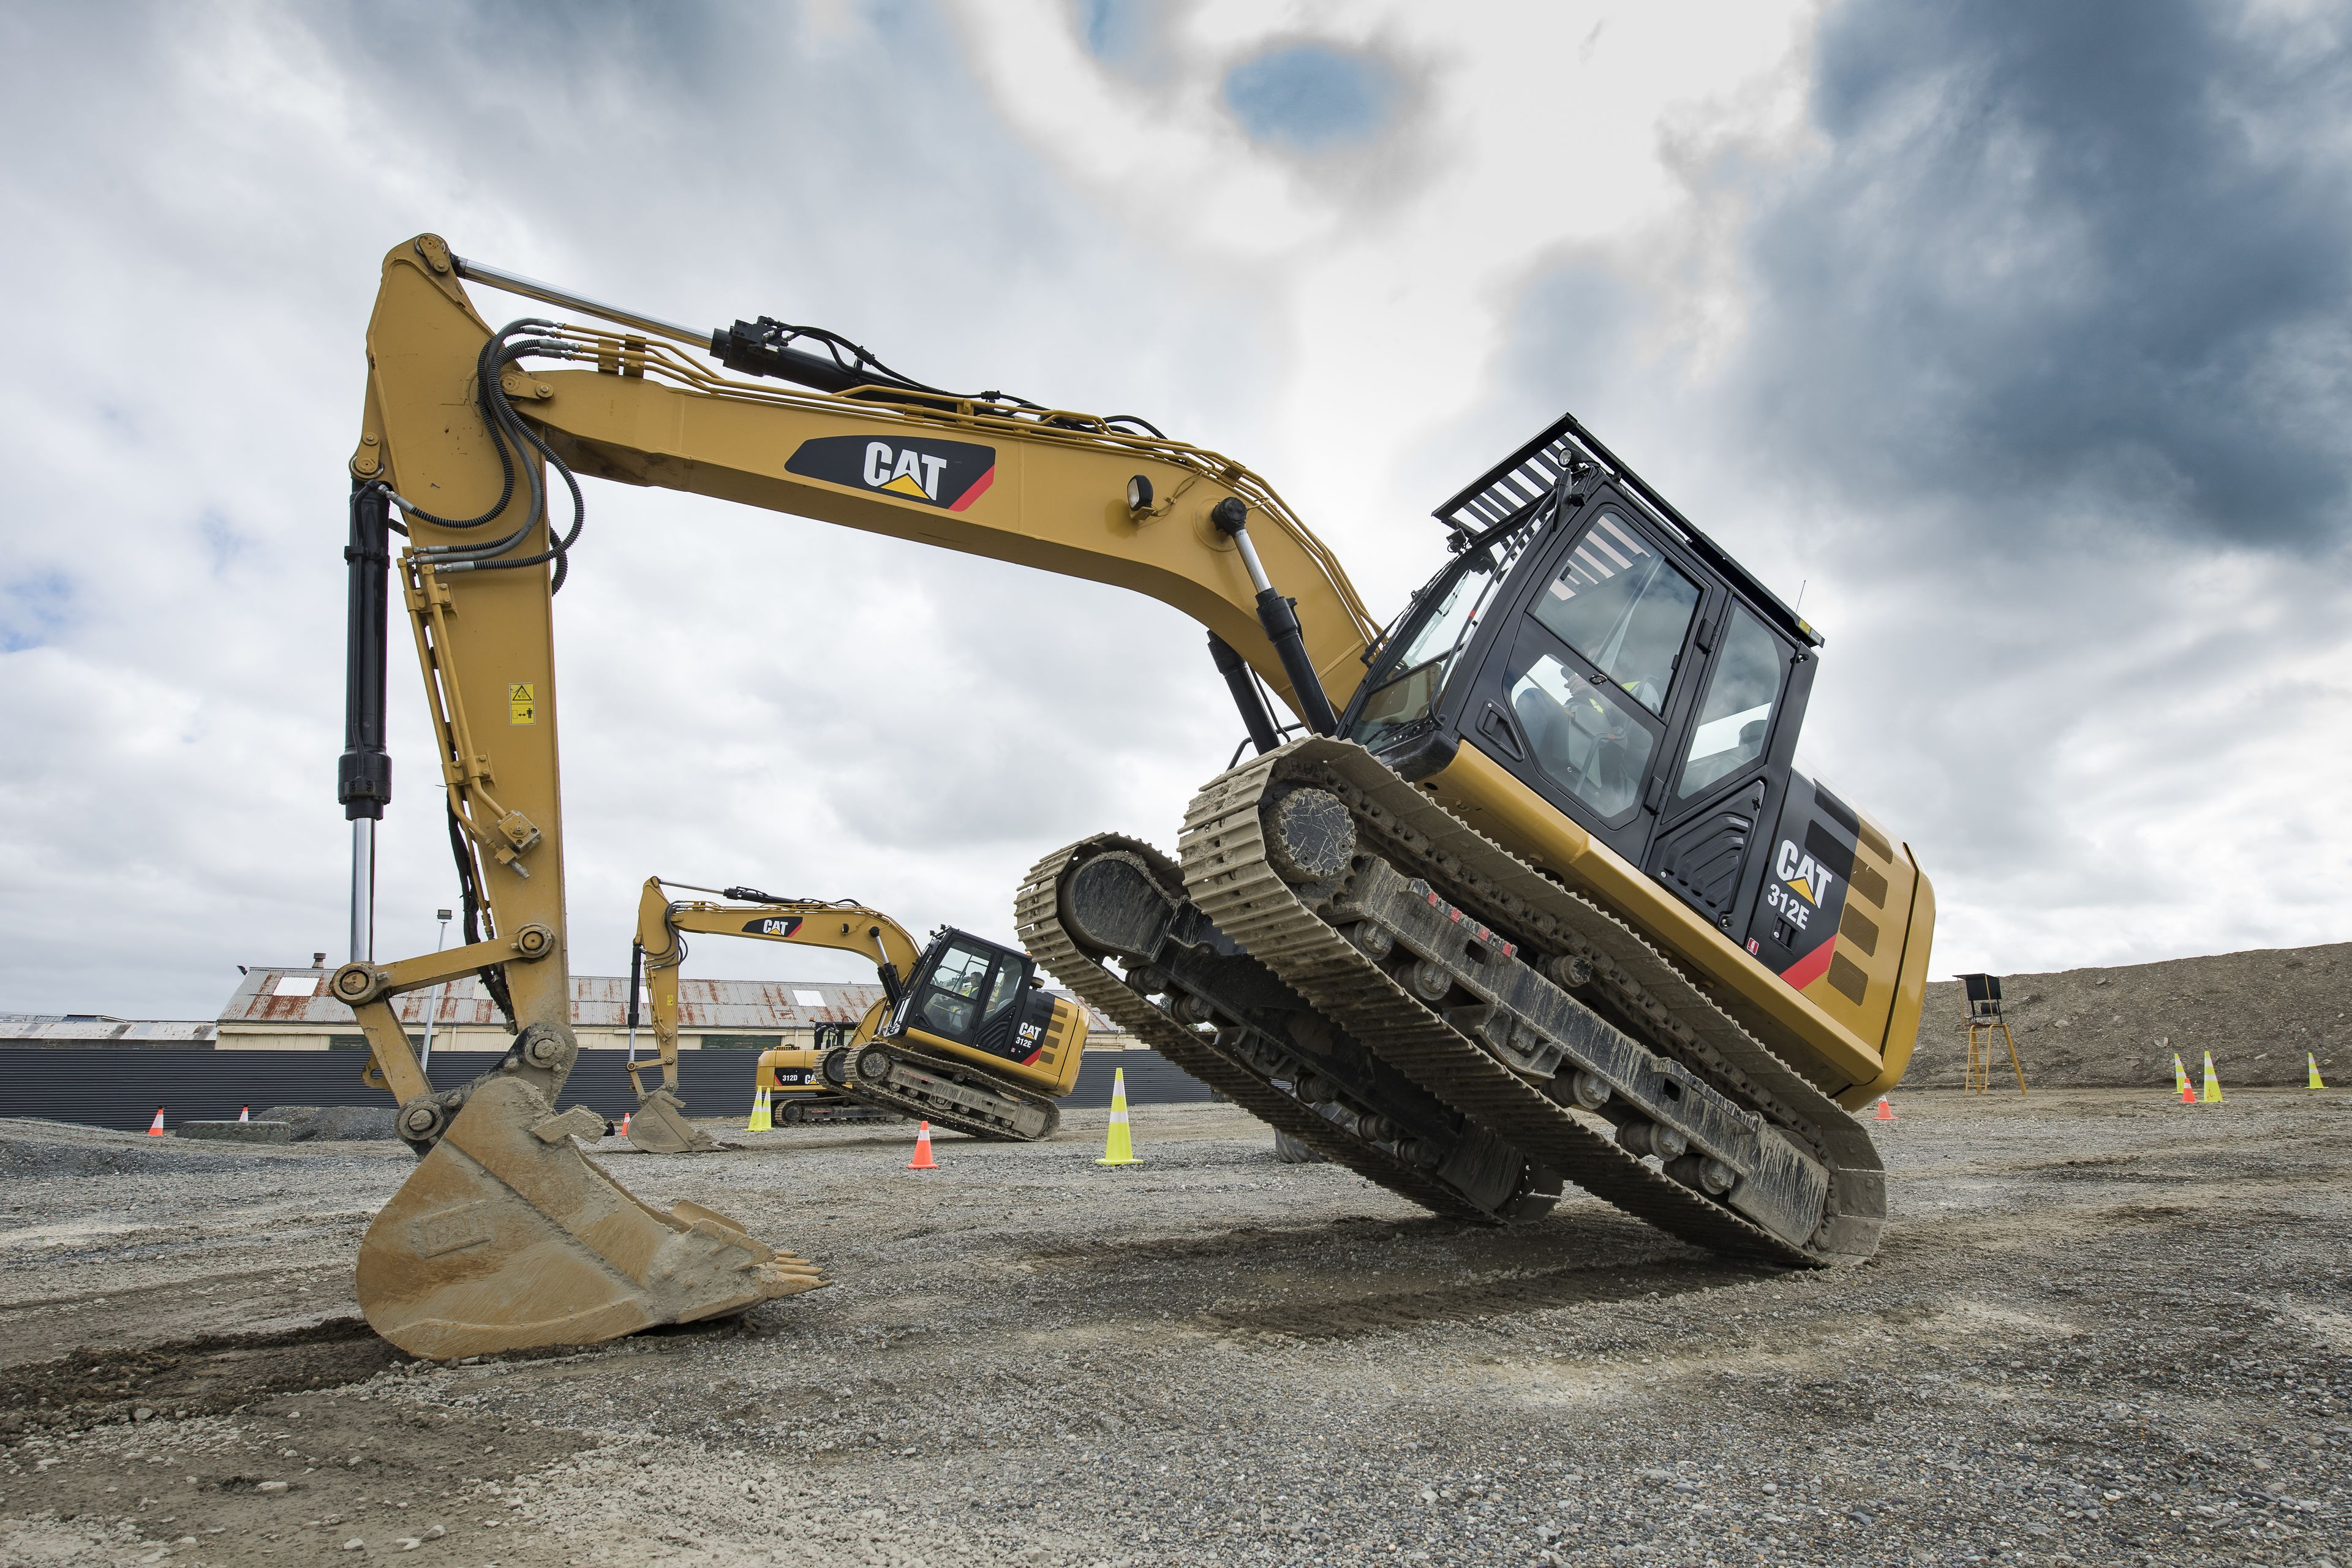 Dig This Invercargill - Big Dig Excavator Experience